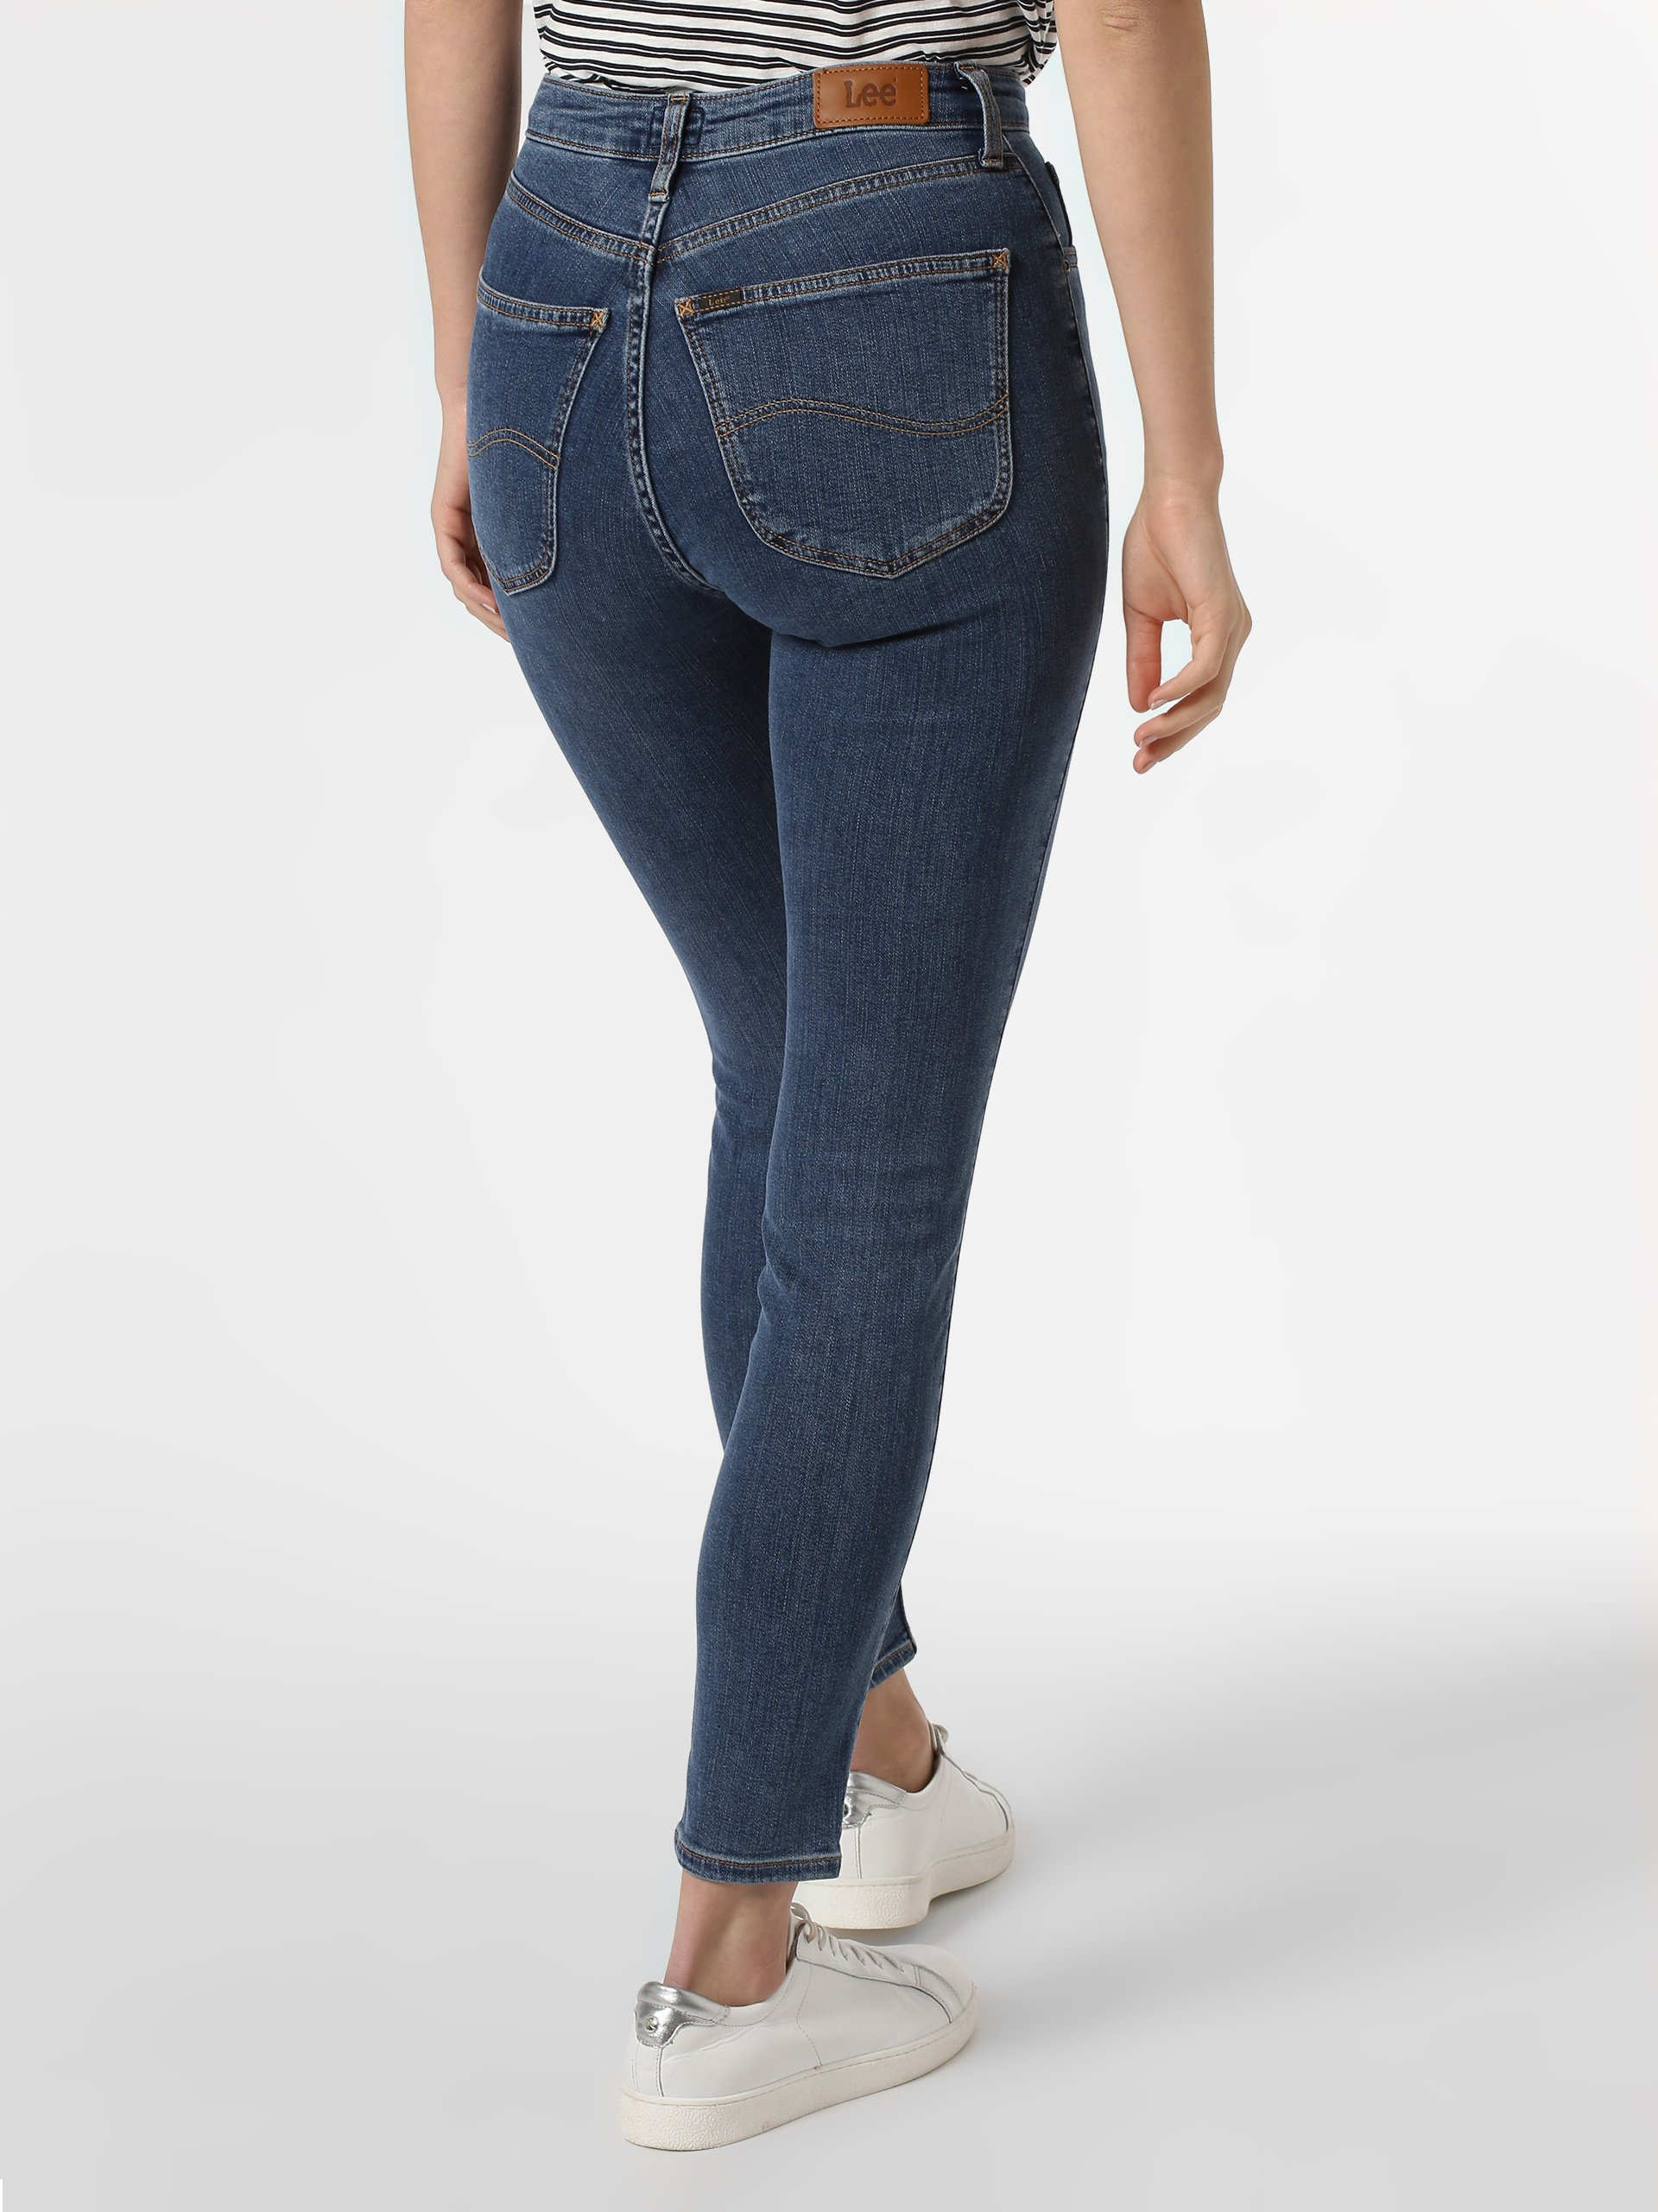 Lee Damen Jeans - Ivy